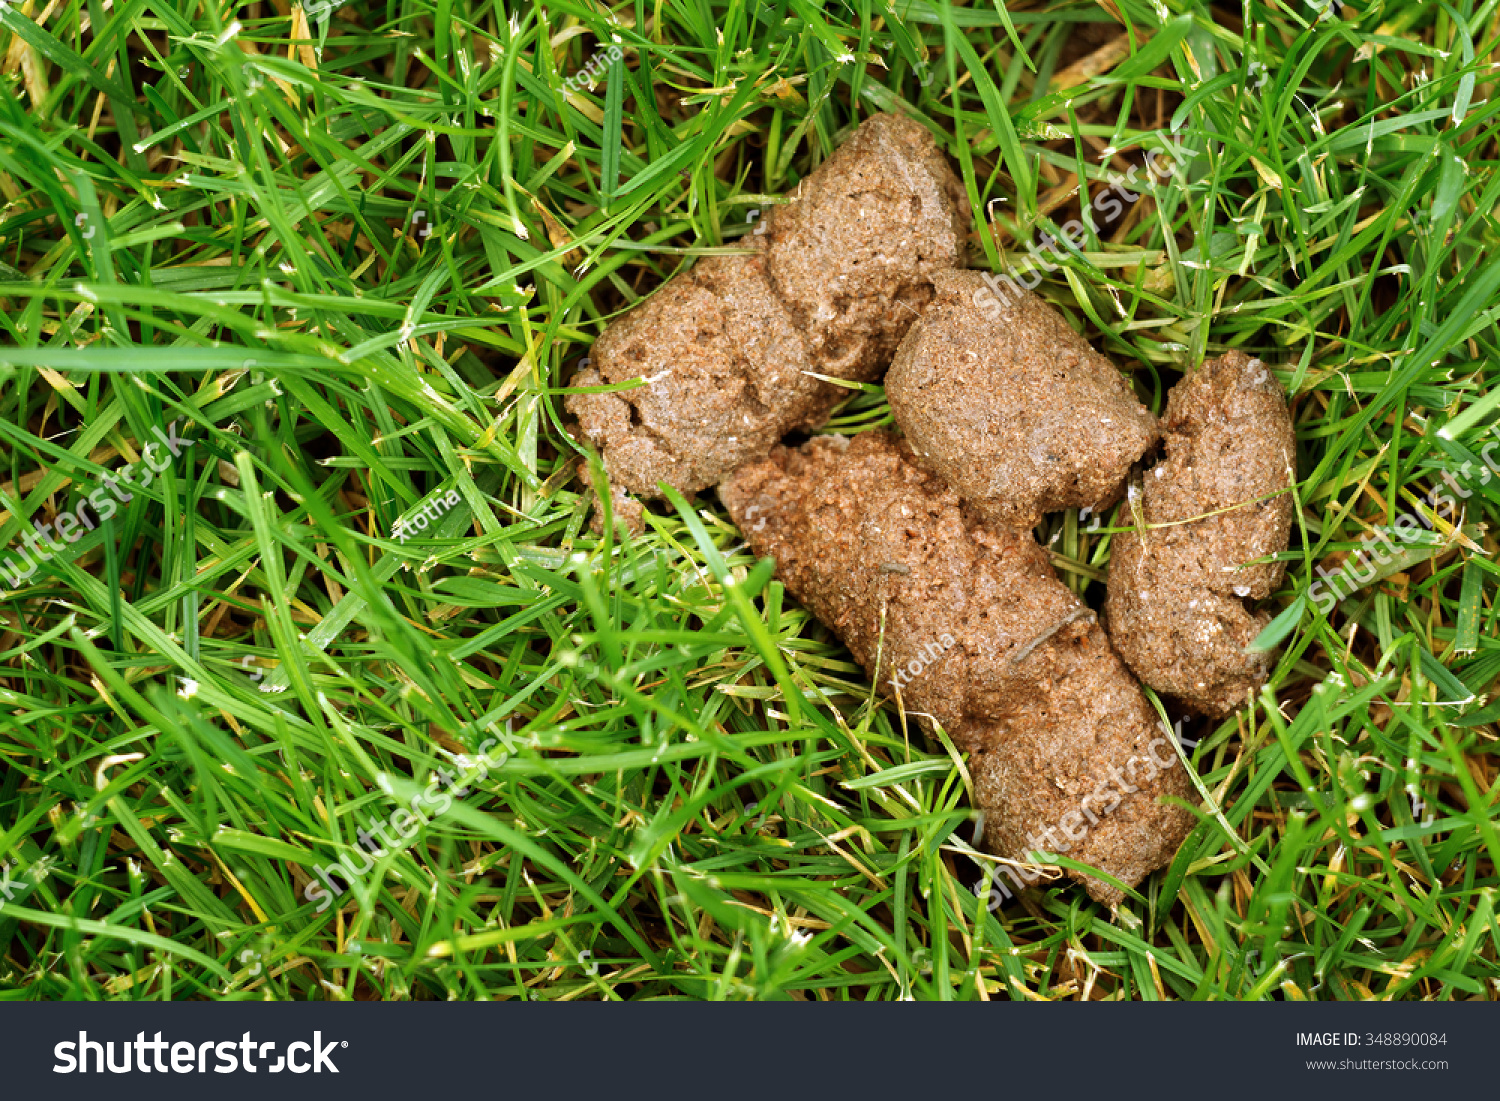 Dog Poop Stock Photo 348890084 - Shutterstock